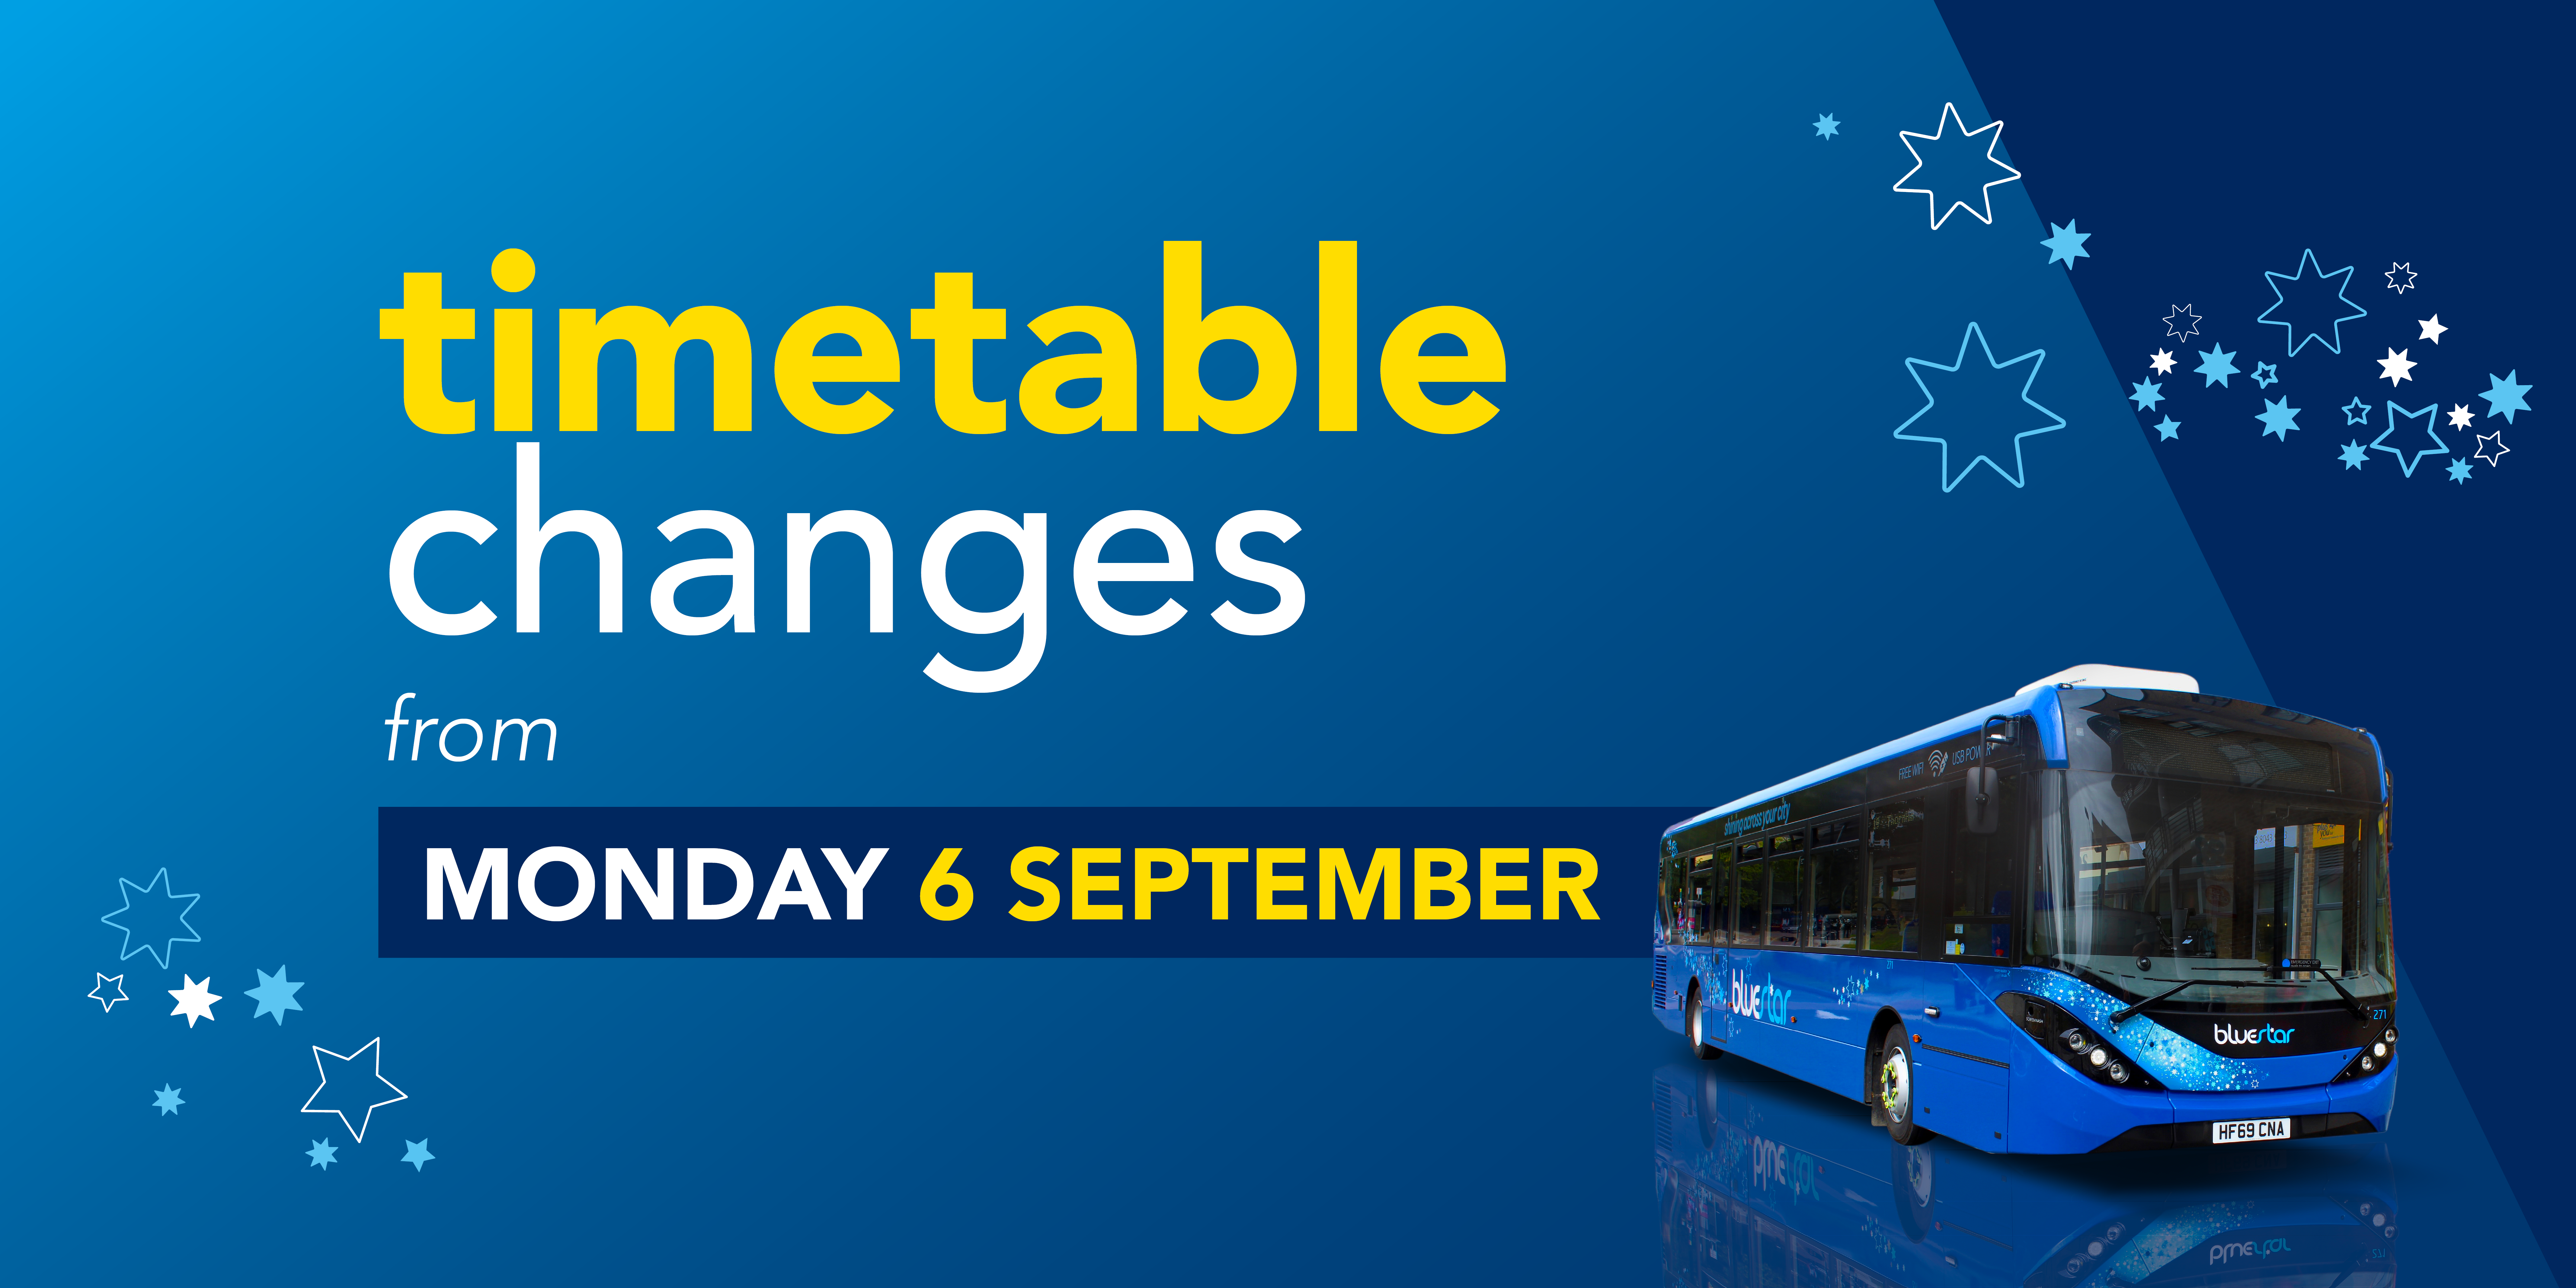 timetable changes from monday 6 september